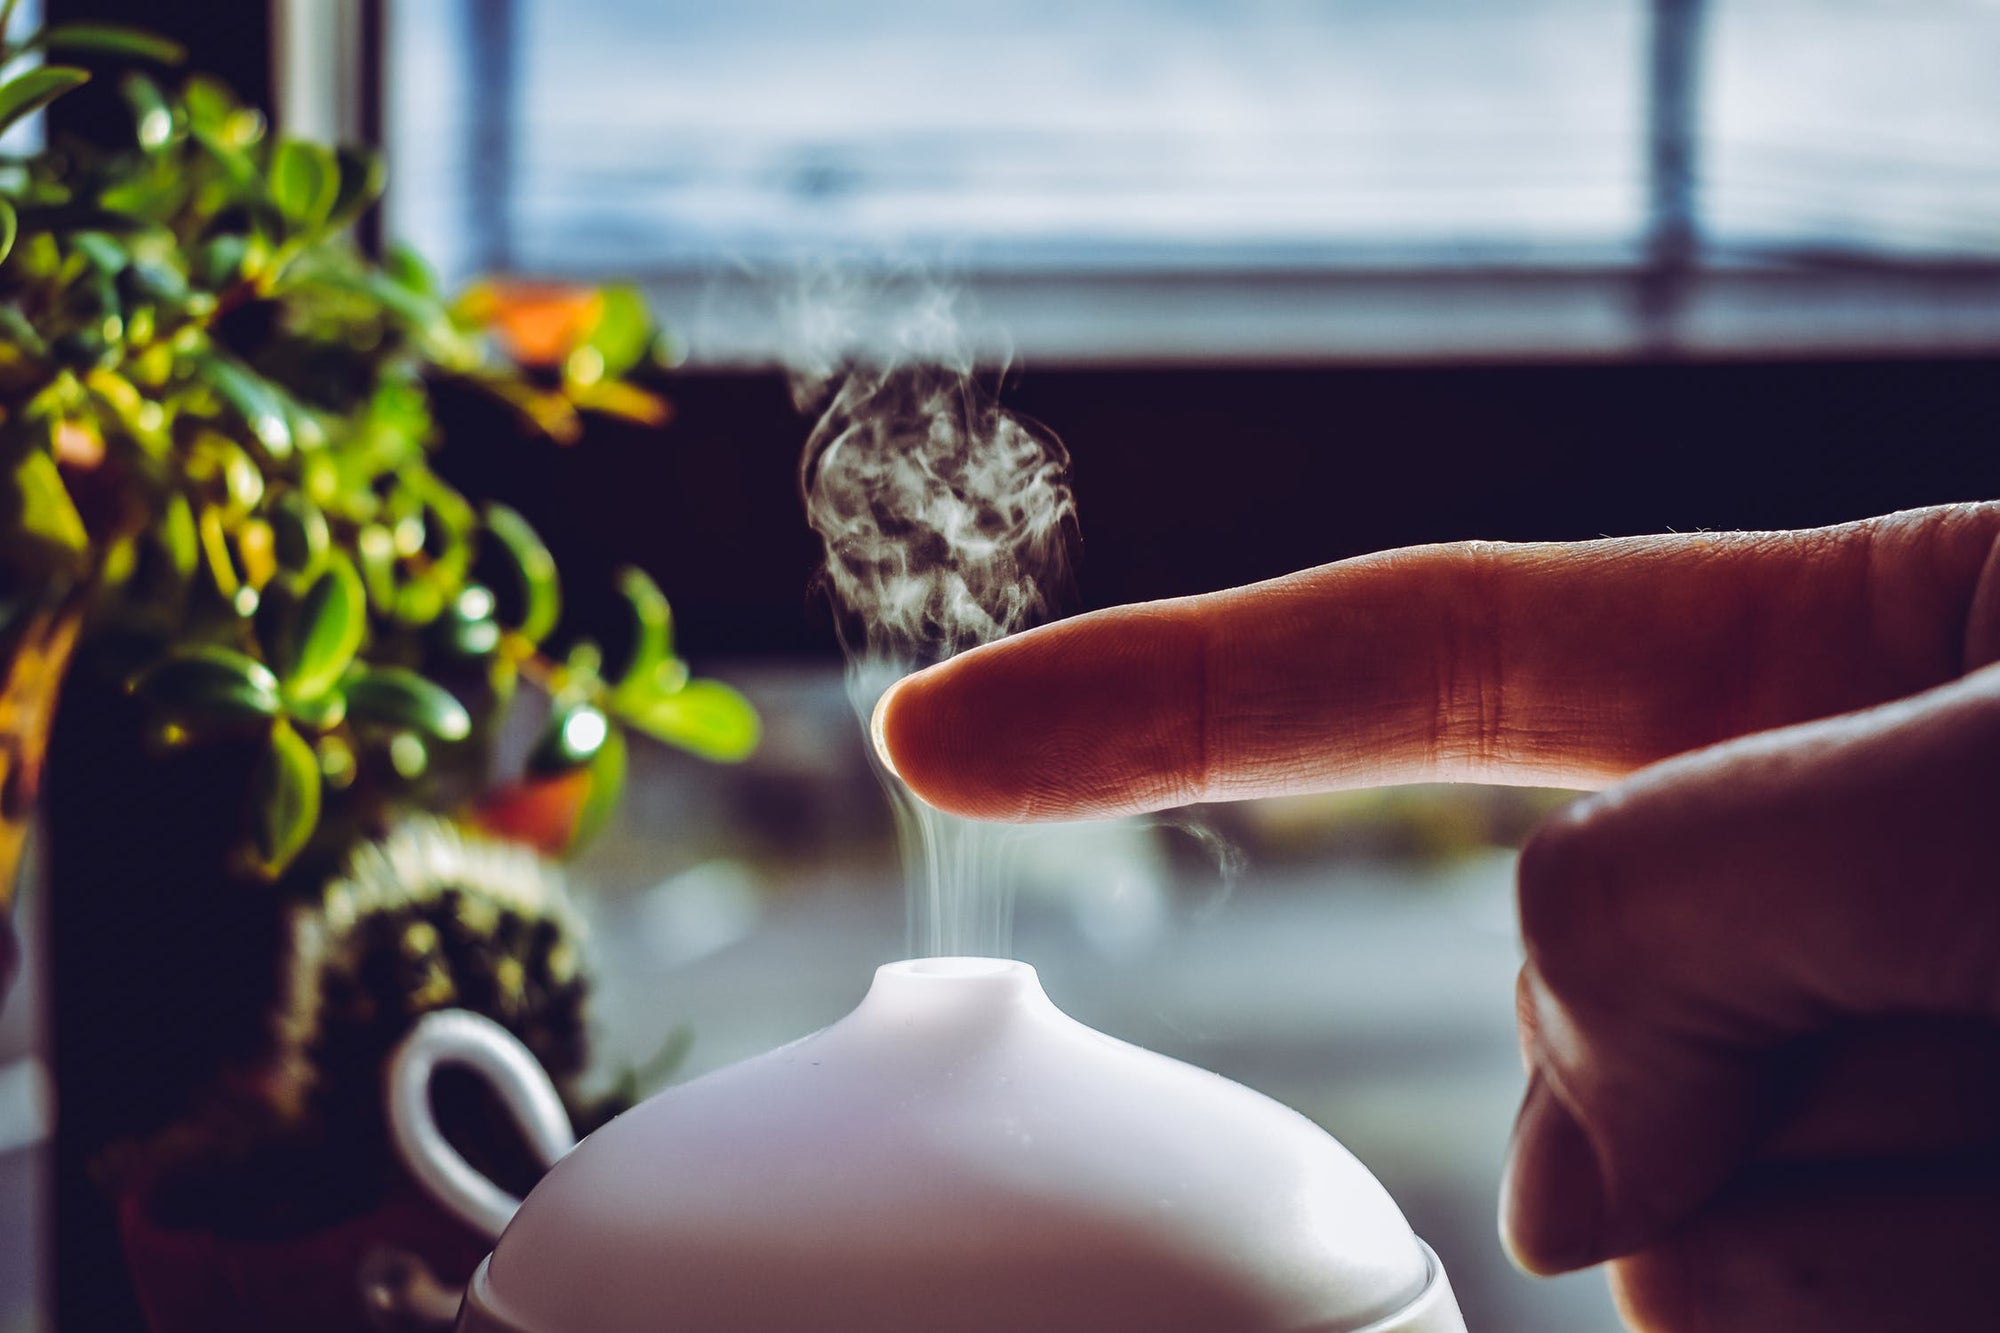 Cool Mist vs Warm Mist: Which Type of Humidifier should You Buy?